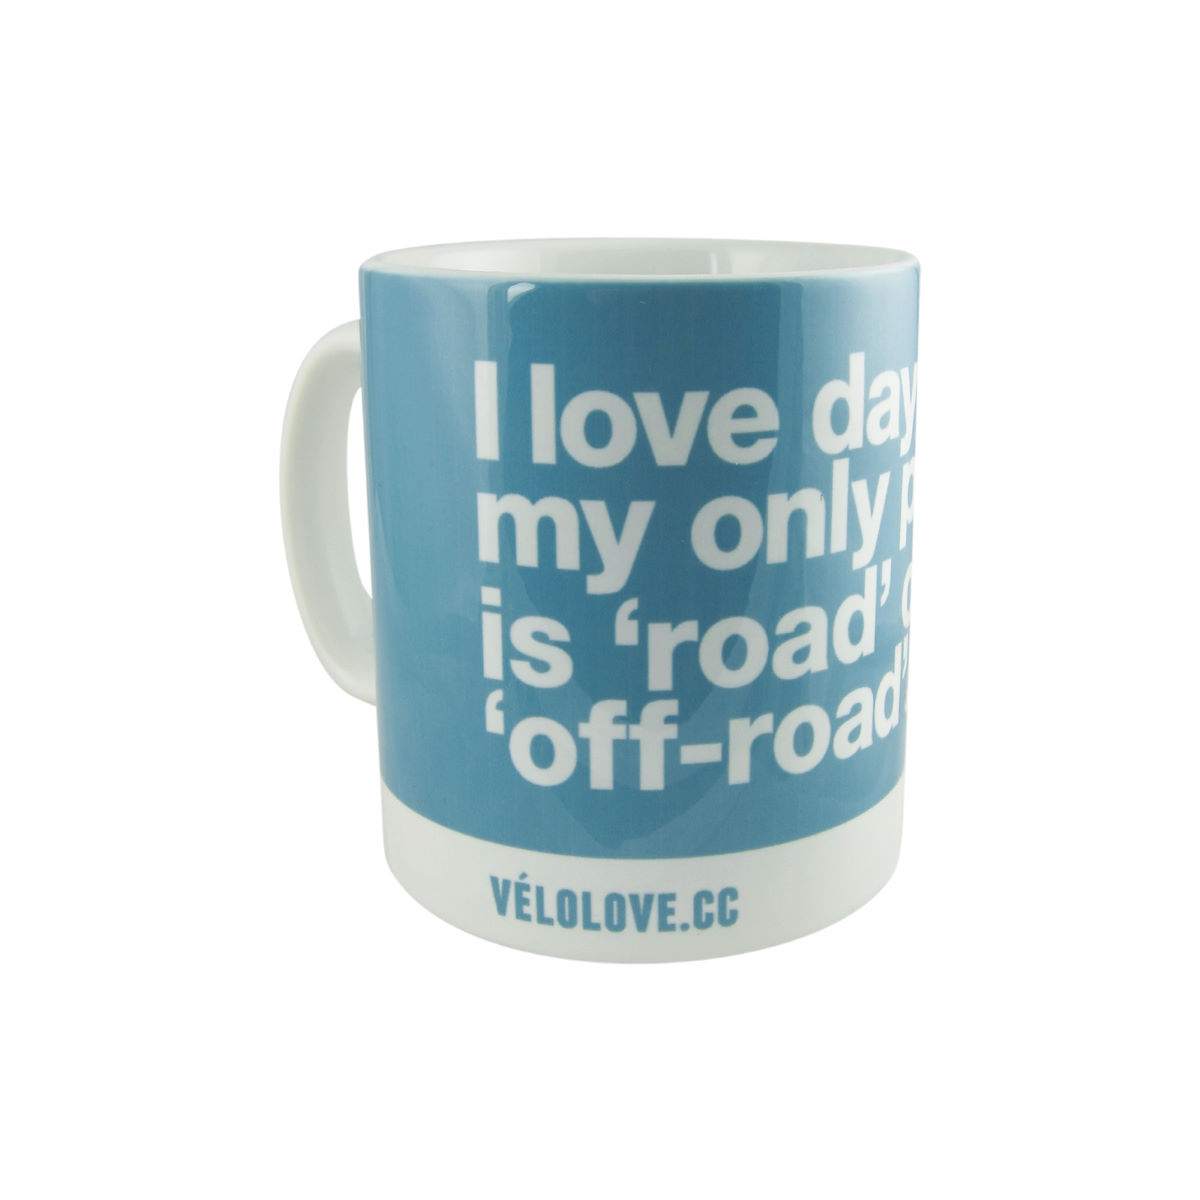 Velolove I love days when my only problem is 'road' or 'off - Regalos